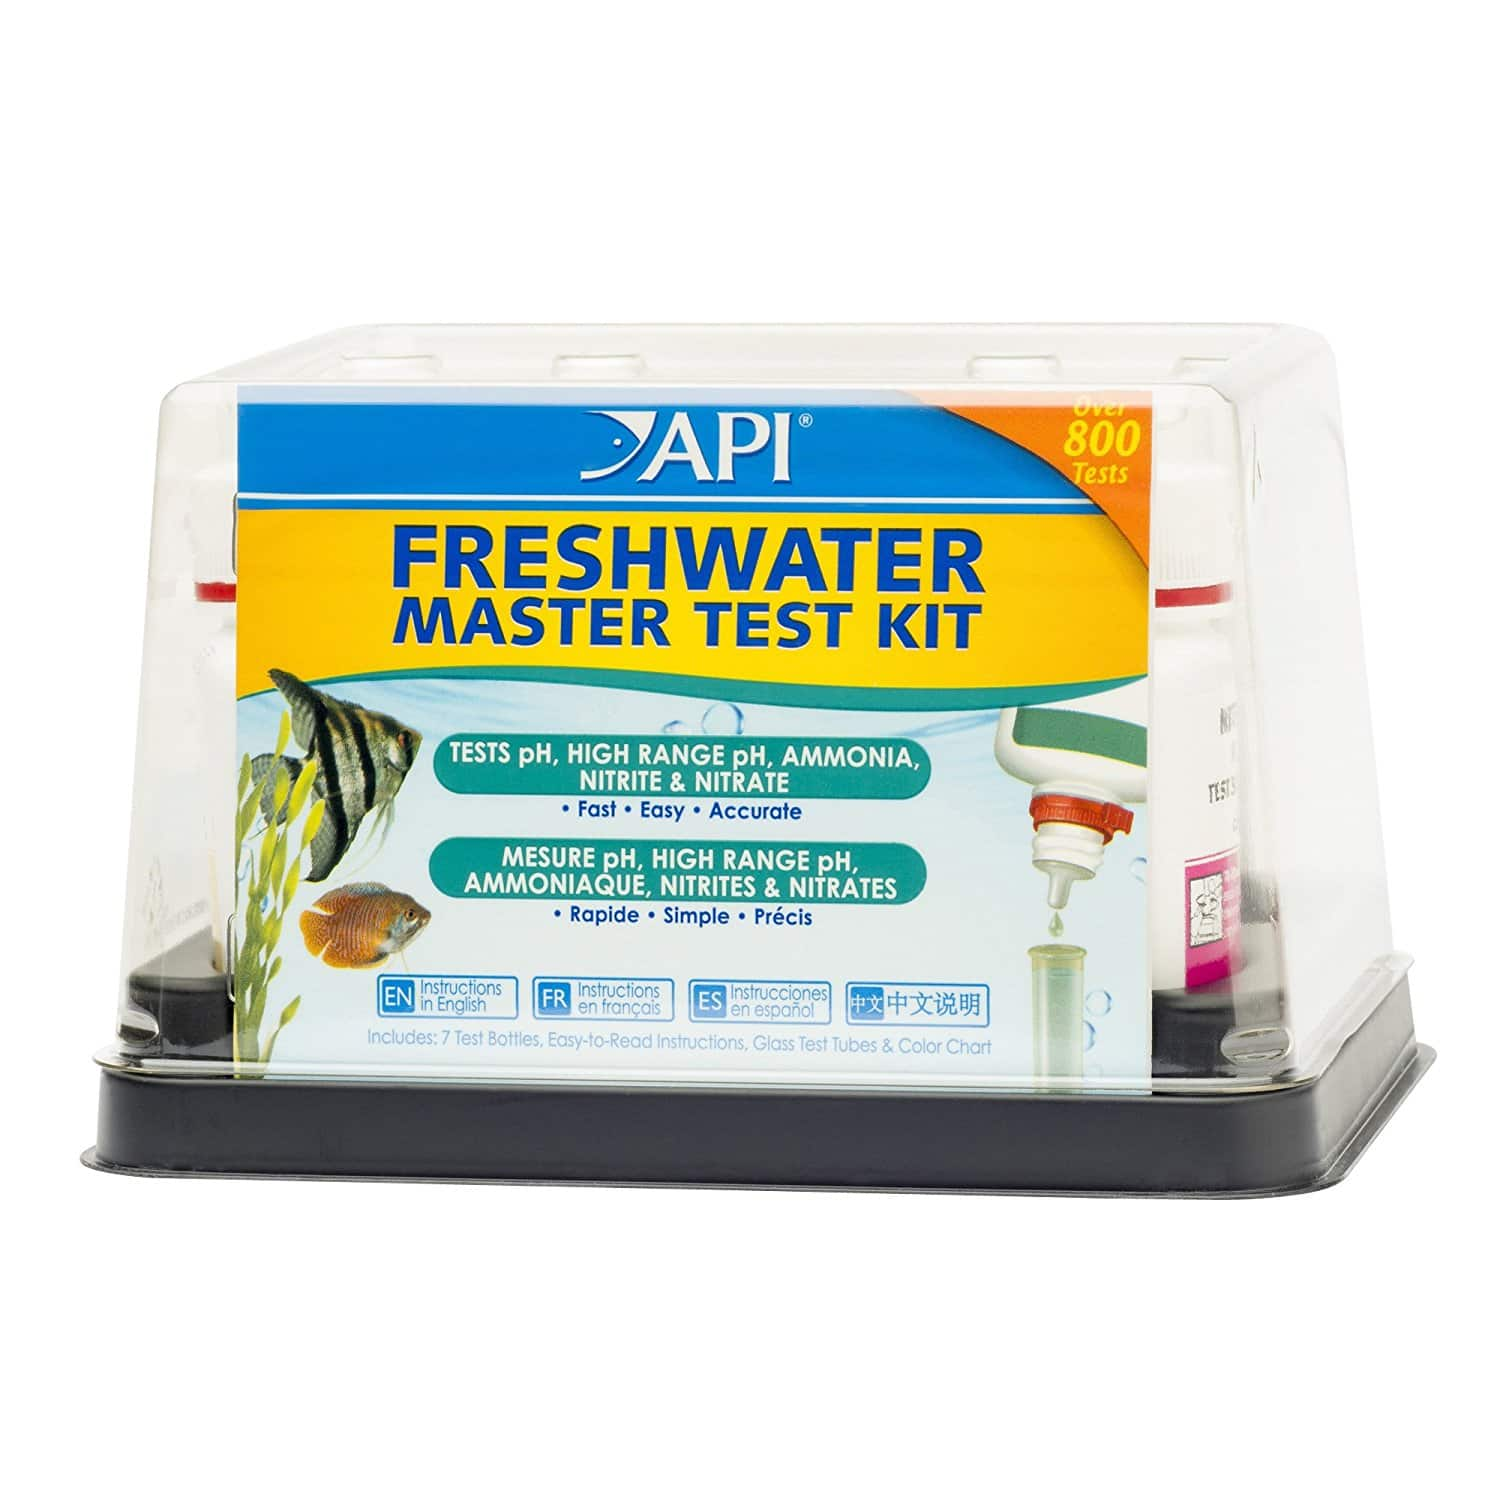 Api freshwater master test kit $15.59